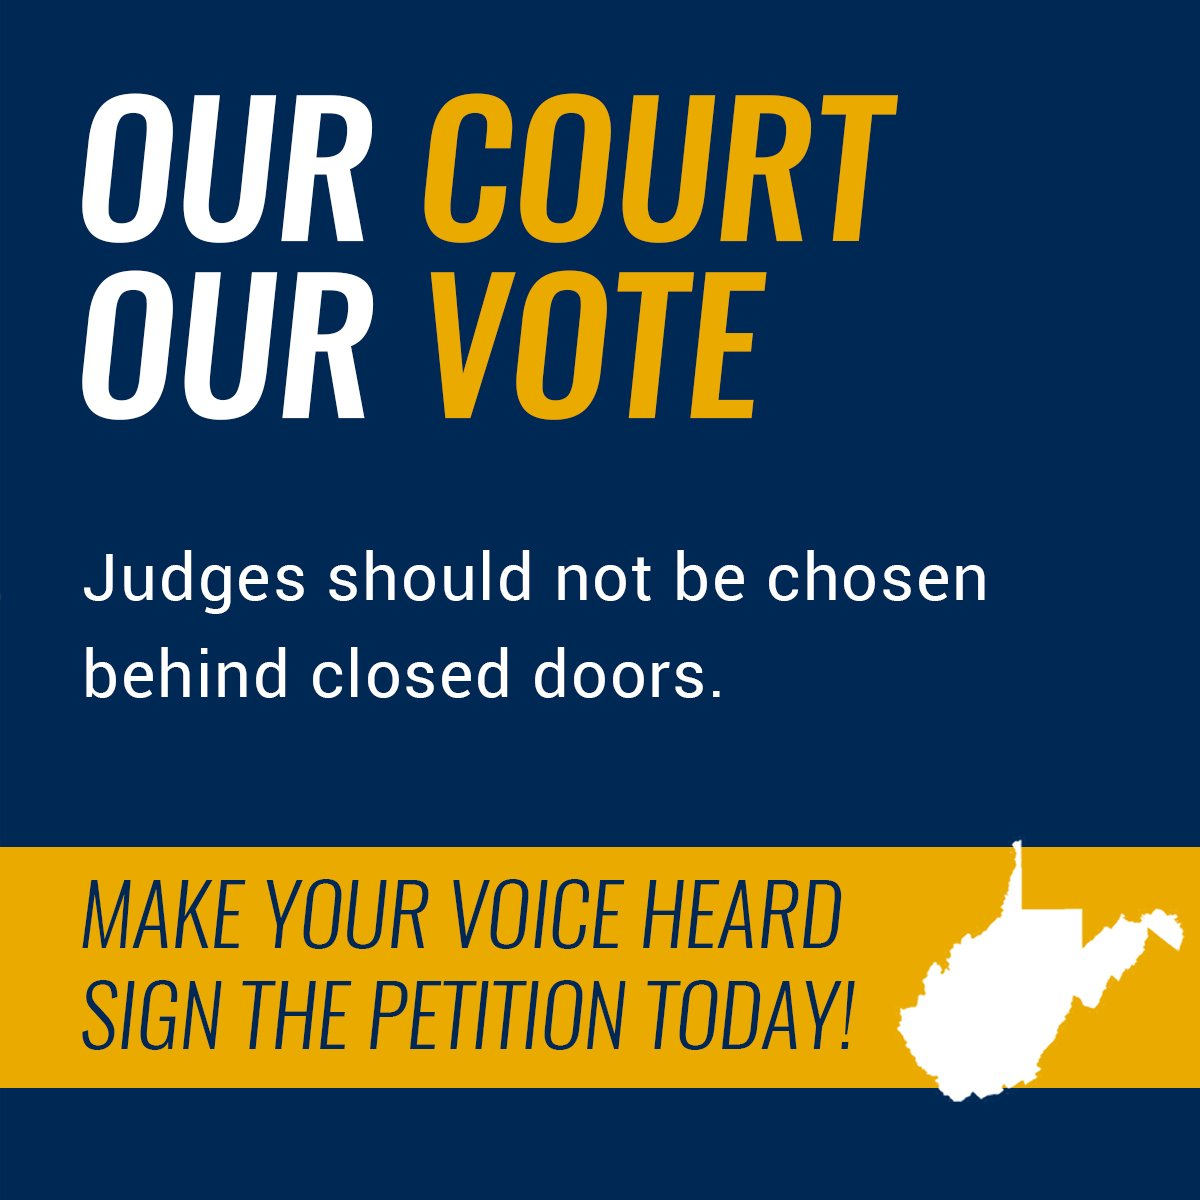 WV Clean Elections on Twitter: